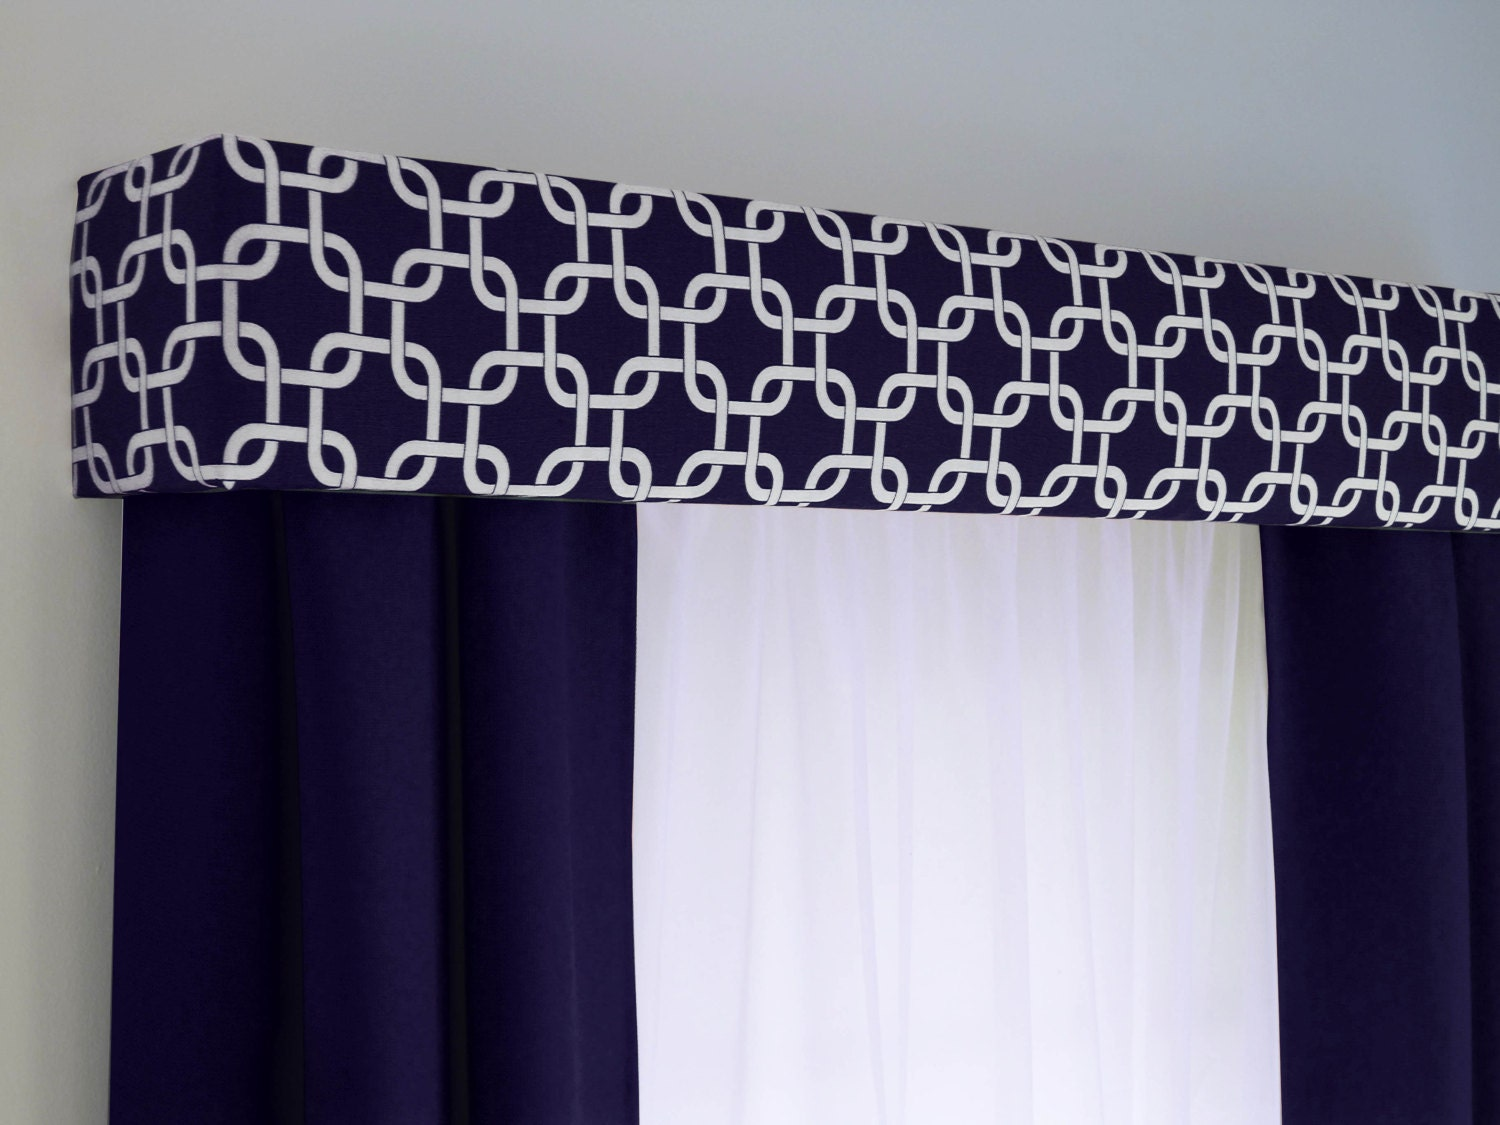 Navy blue geometric cornice board valance window treatment Contemporary drapes window treatments